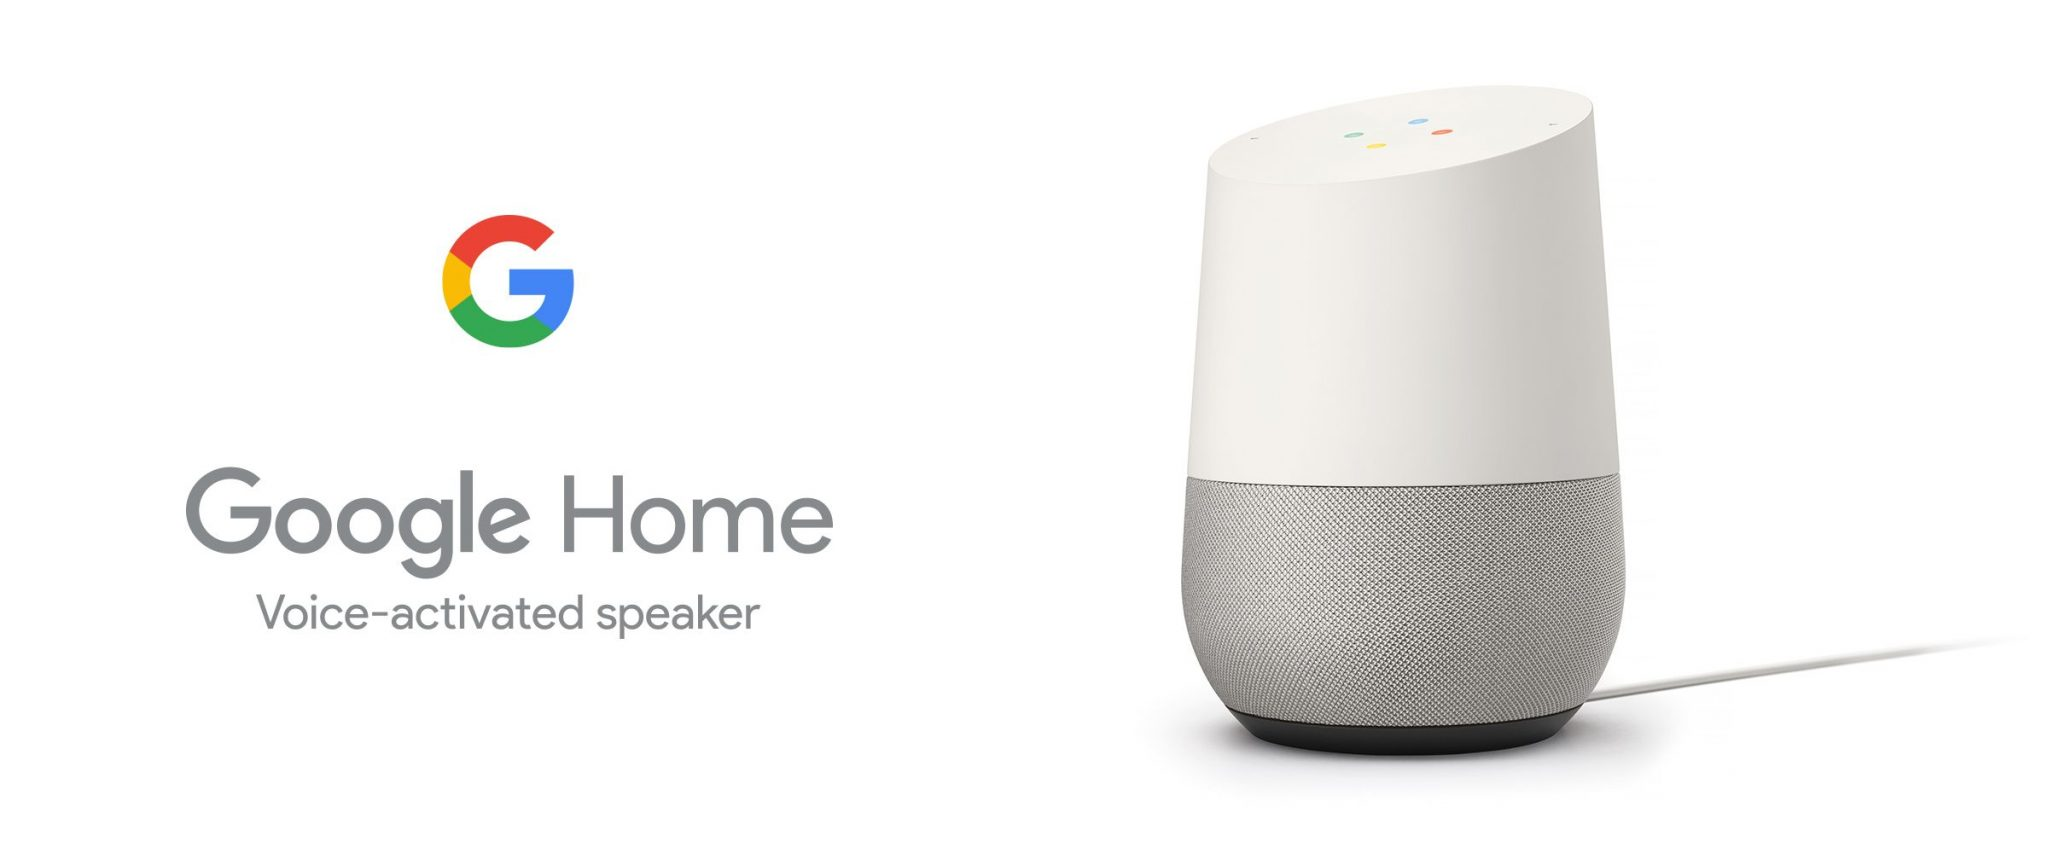 google home and google lens two new google products